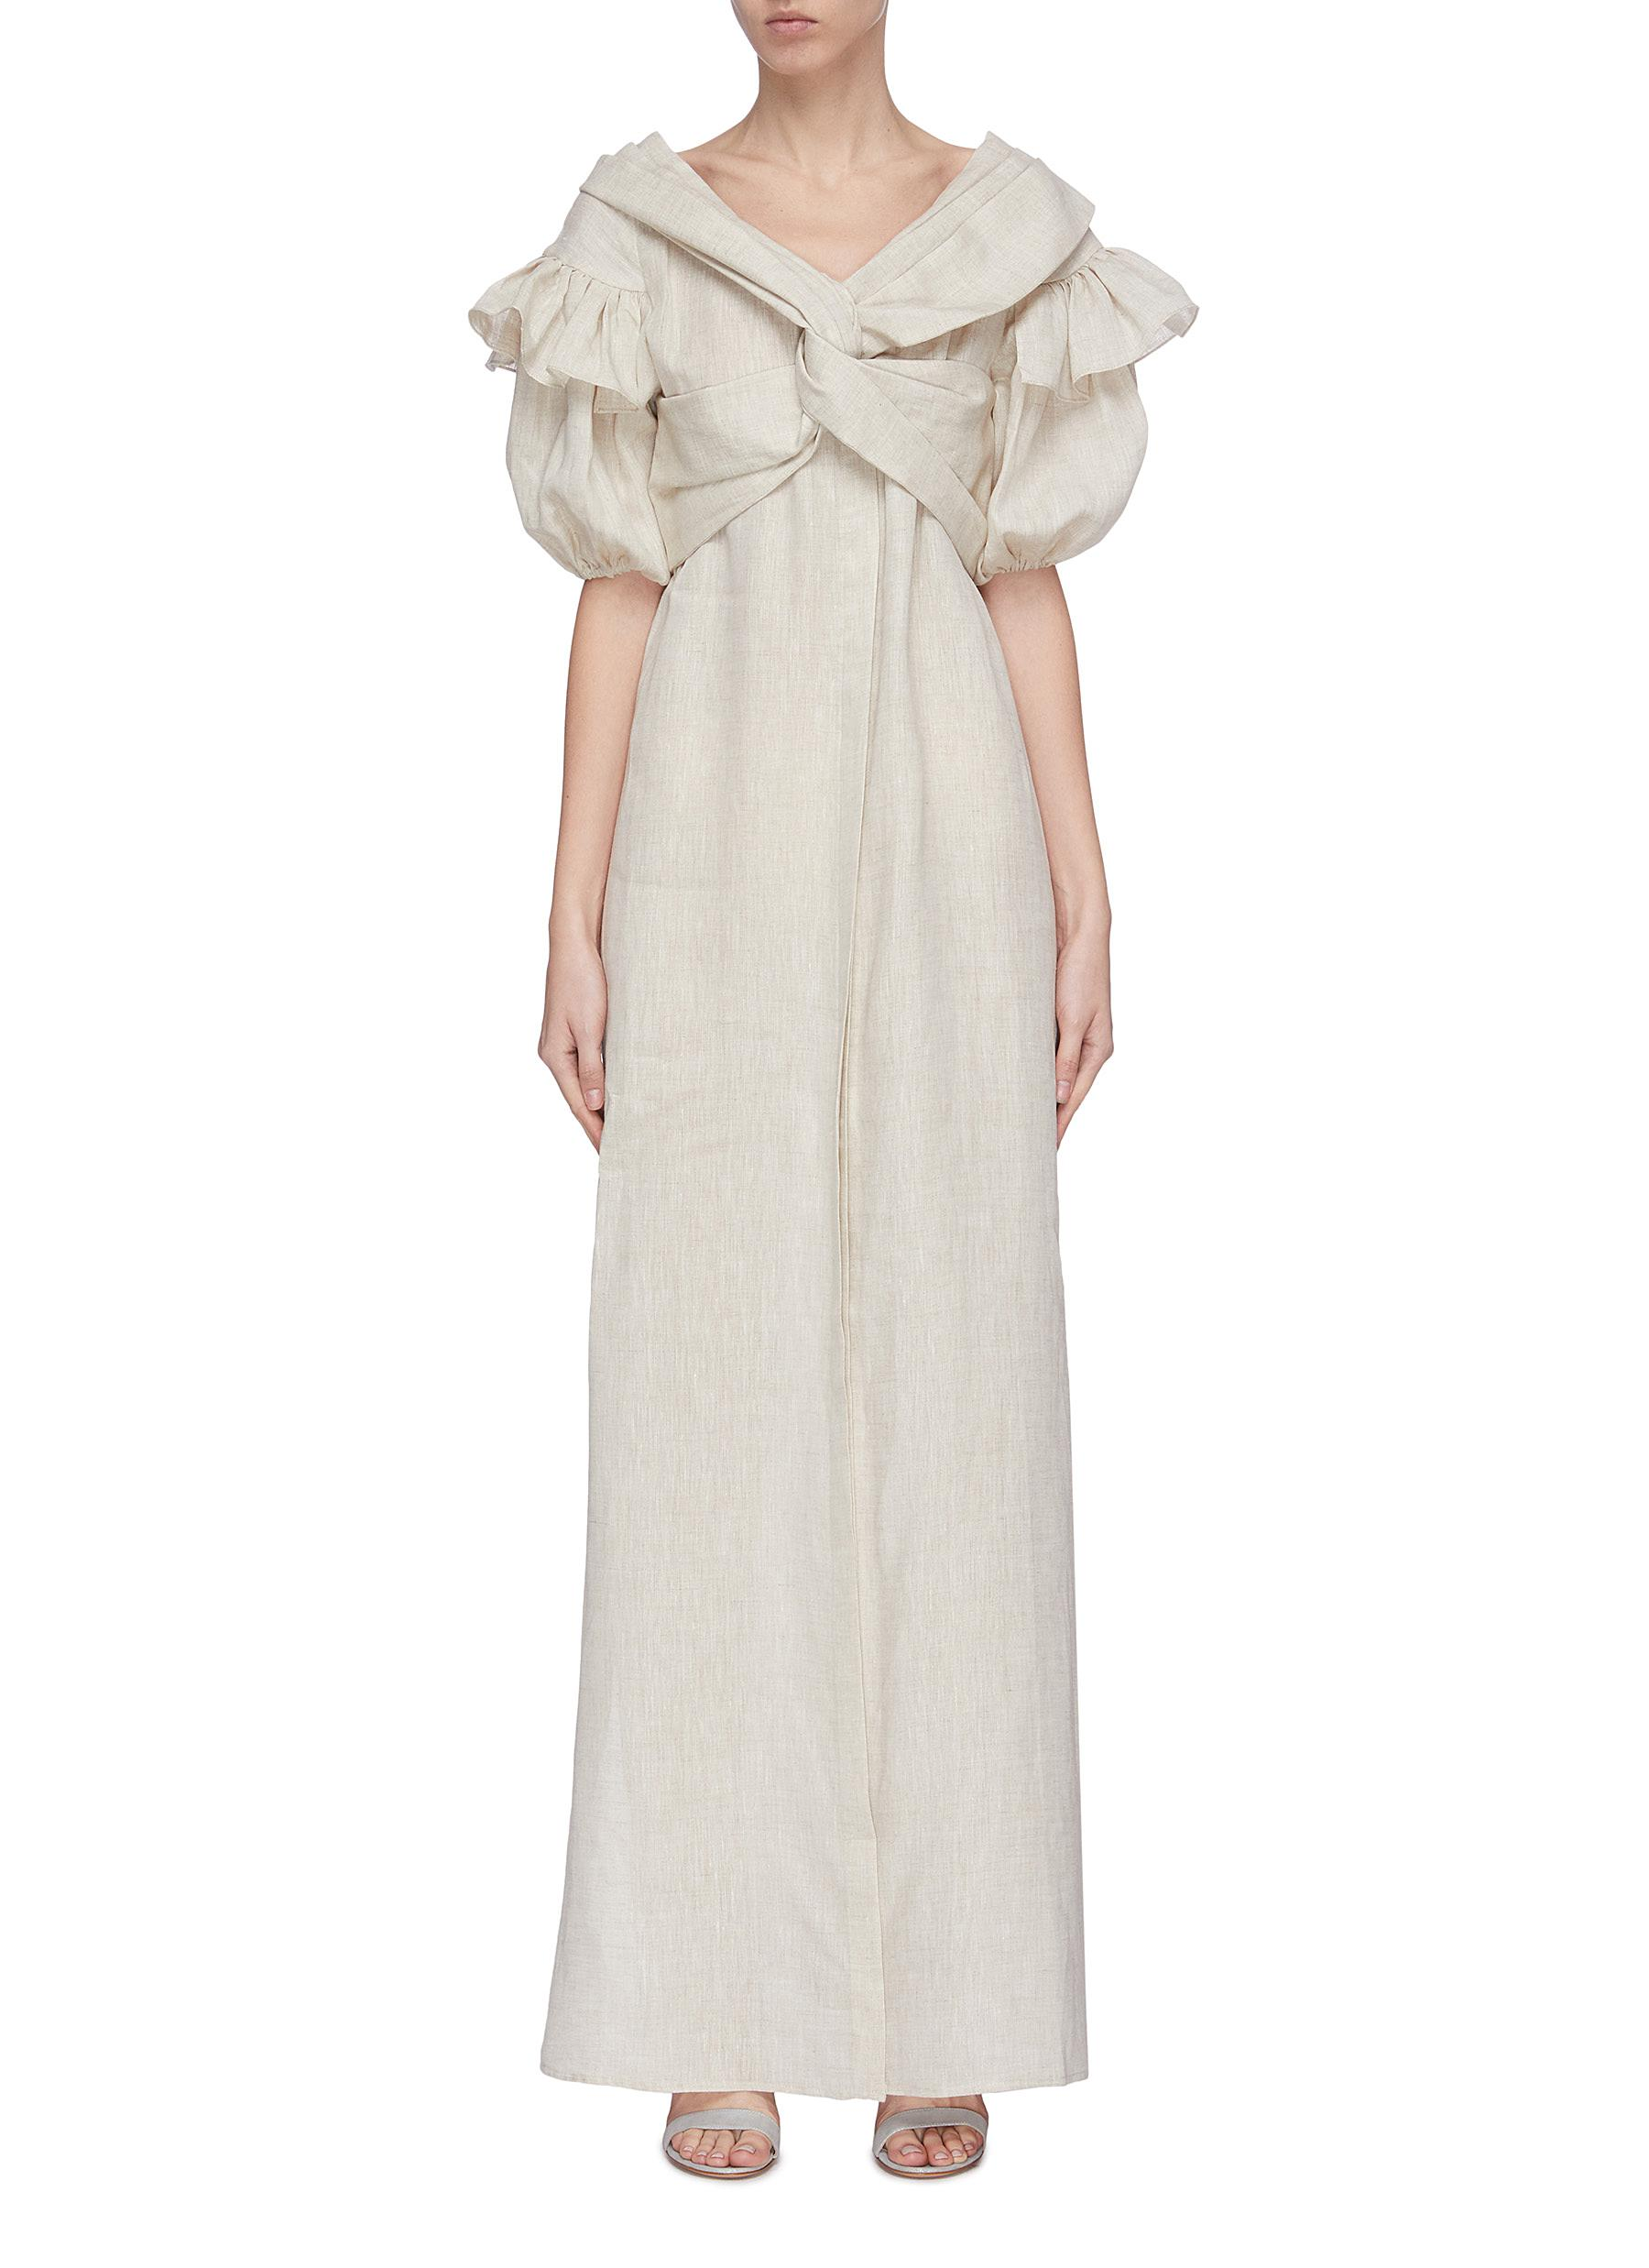 Buy Leal Daccarett Dresses 'Anastasia' twisted front puff sleeve maxi dress